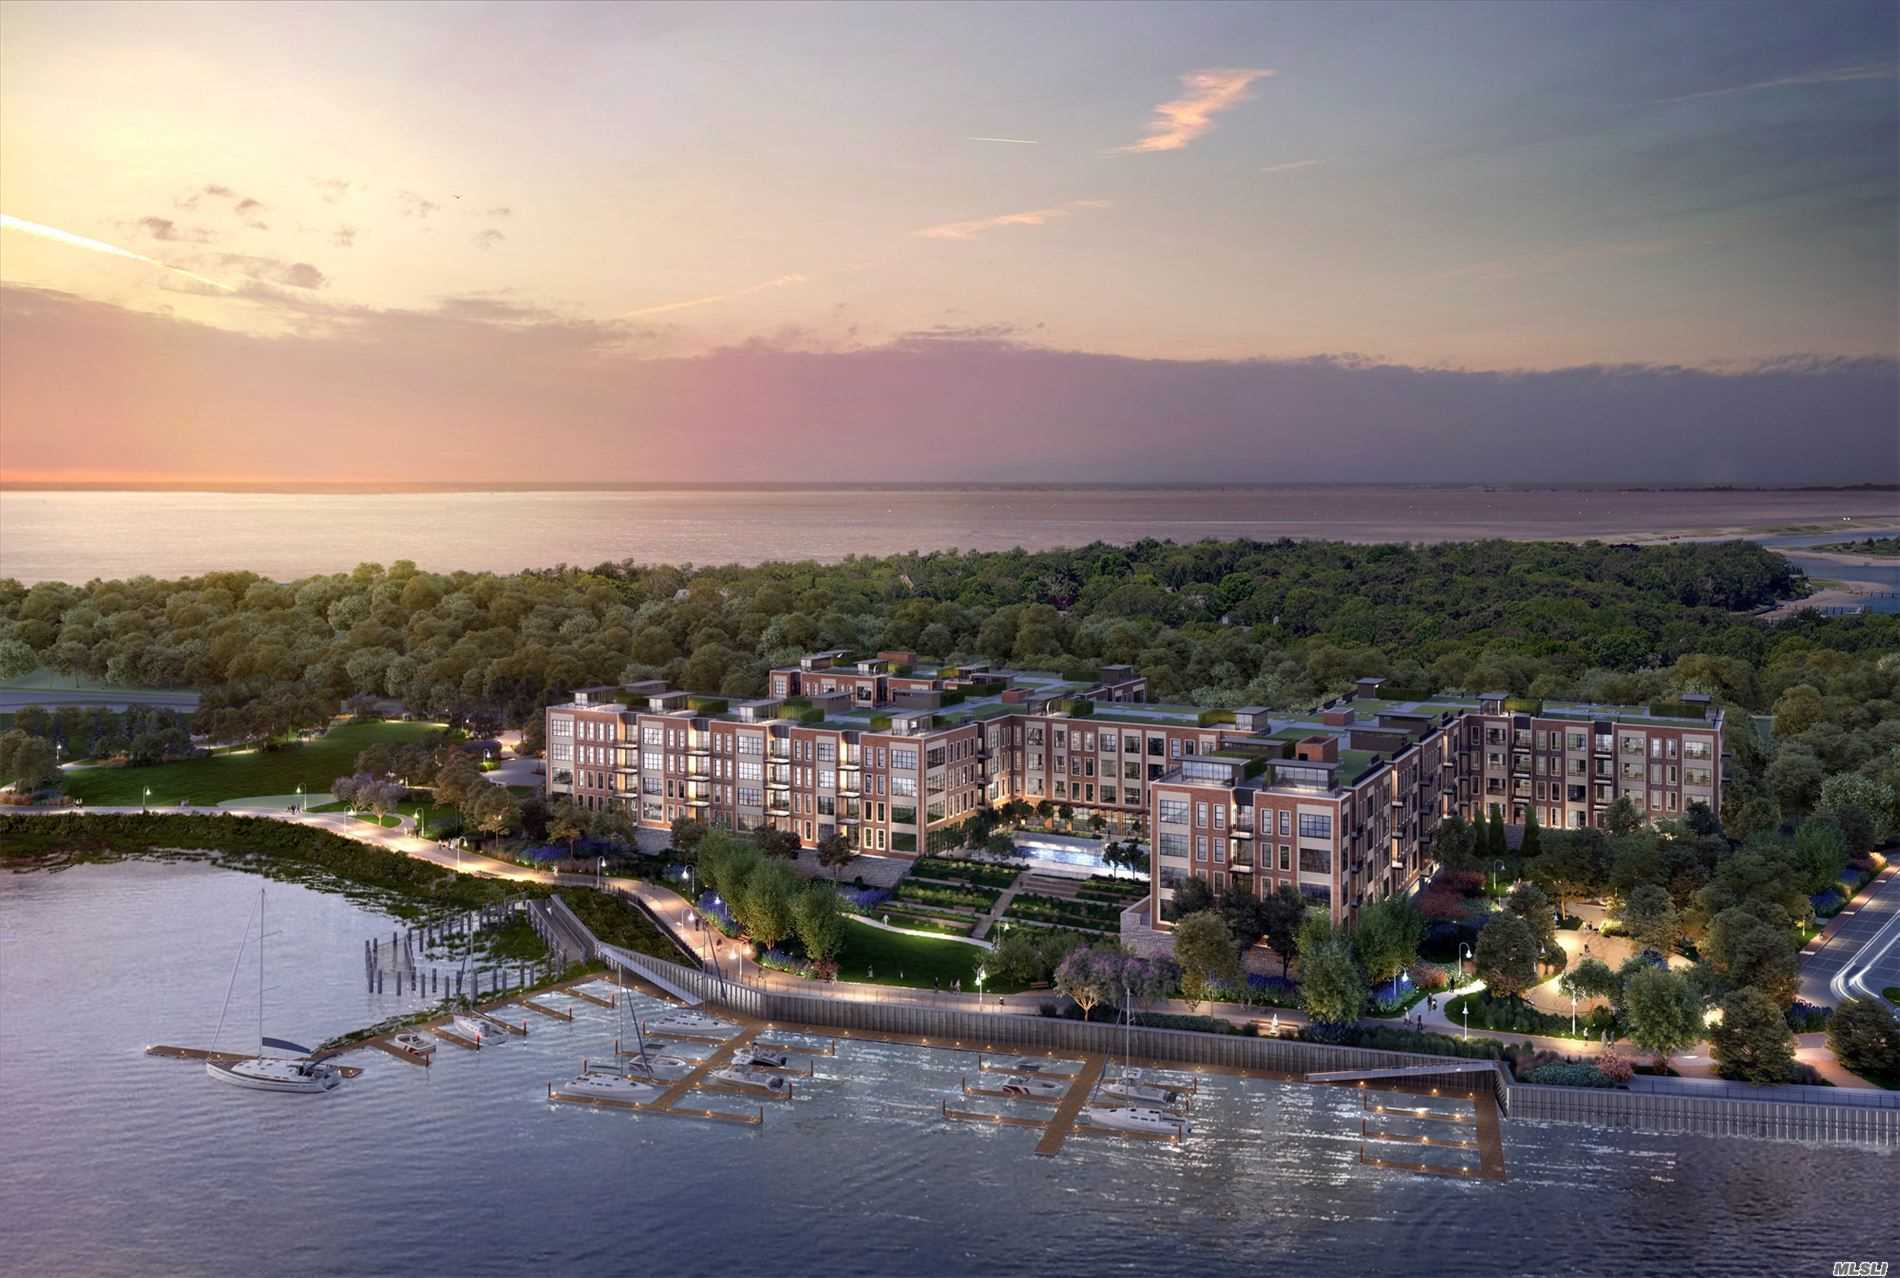 Property for sale at 100 Garvies Point Road # 1317, Glen Cove NY 11542, Glen Cove,  New York 11542